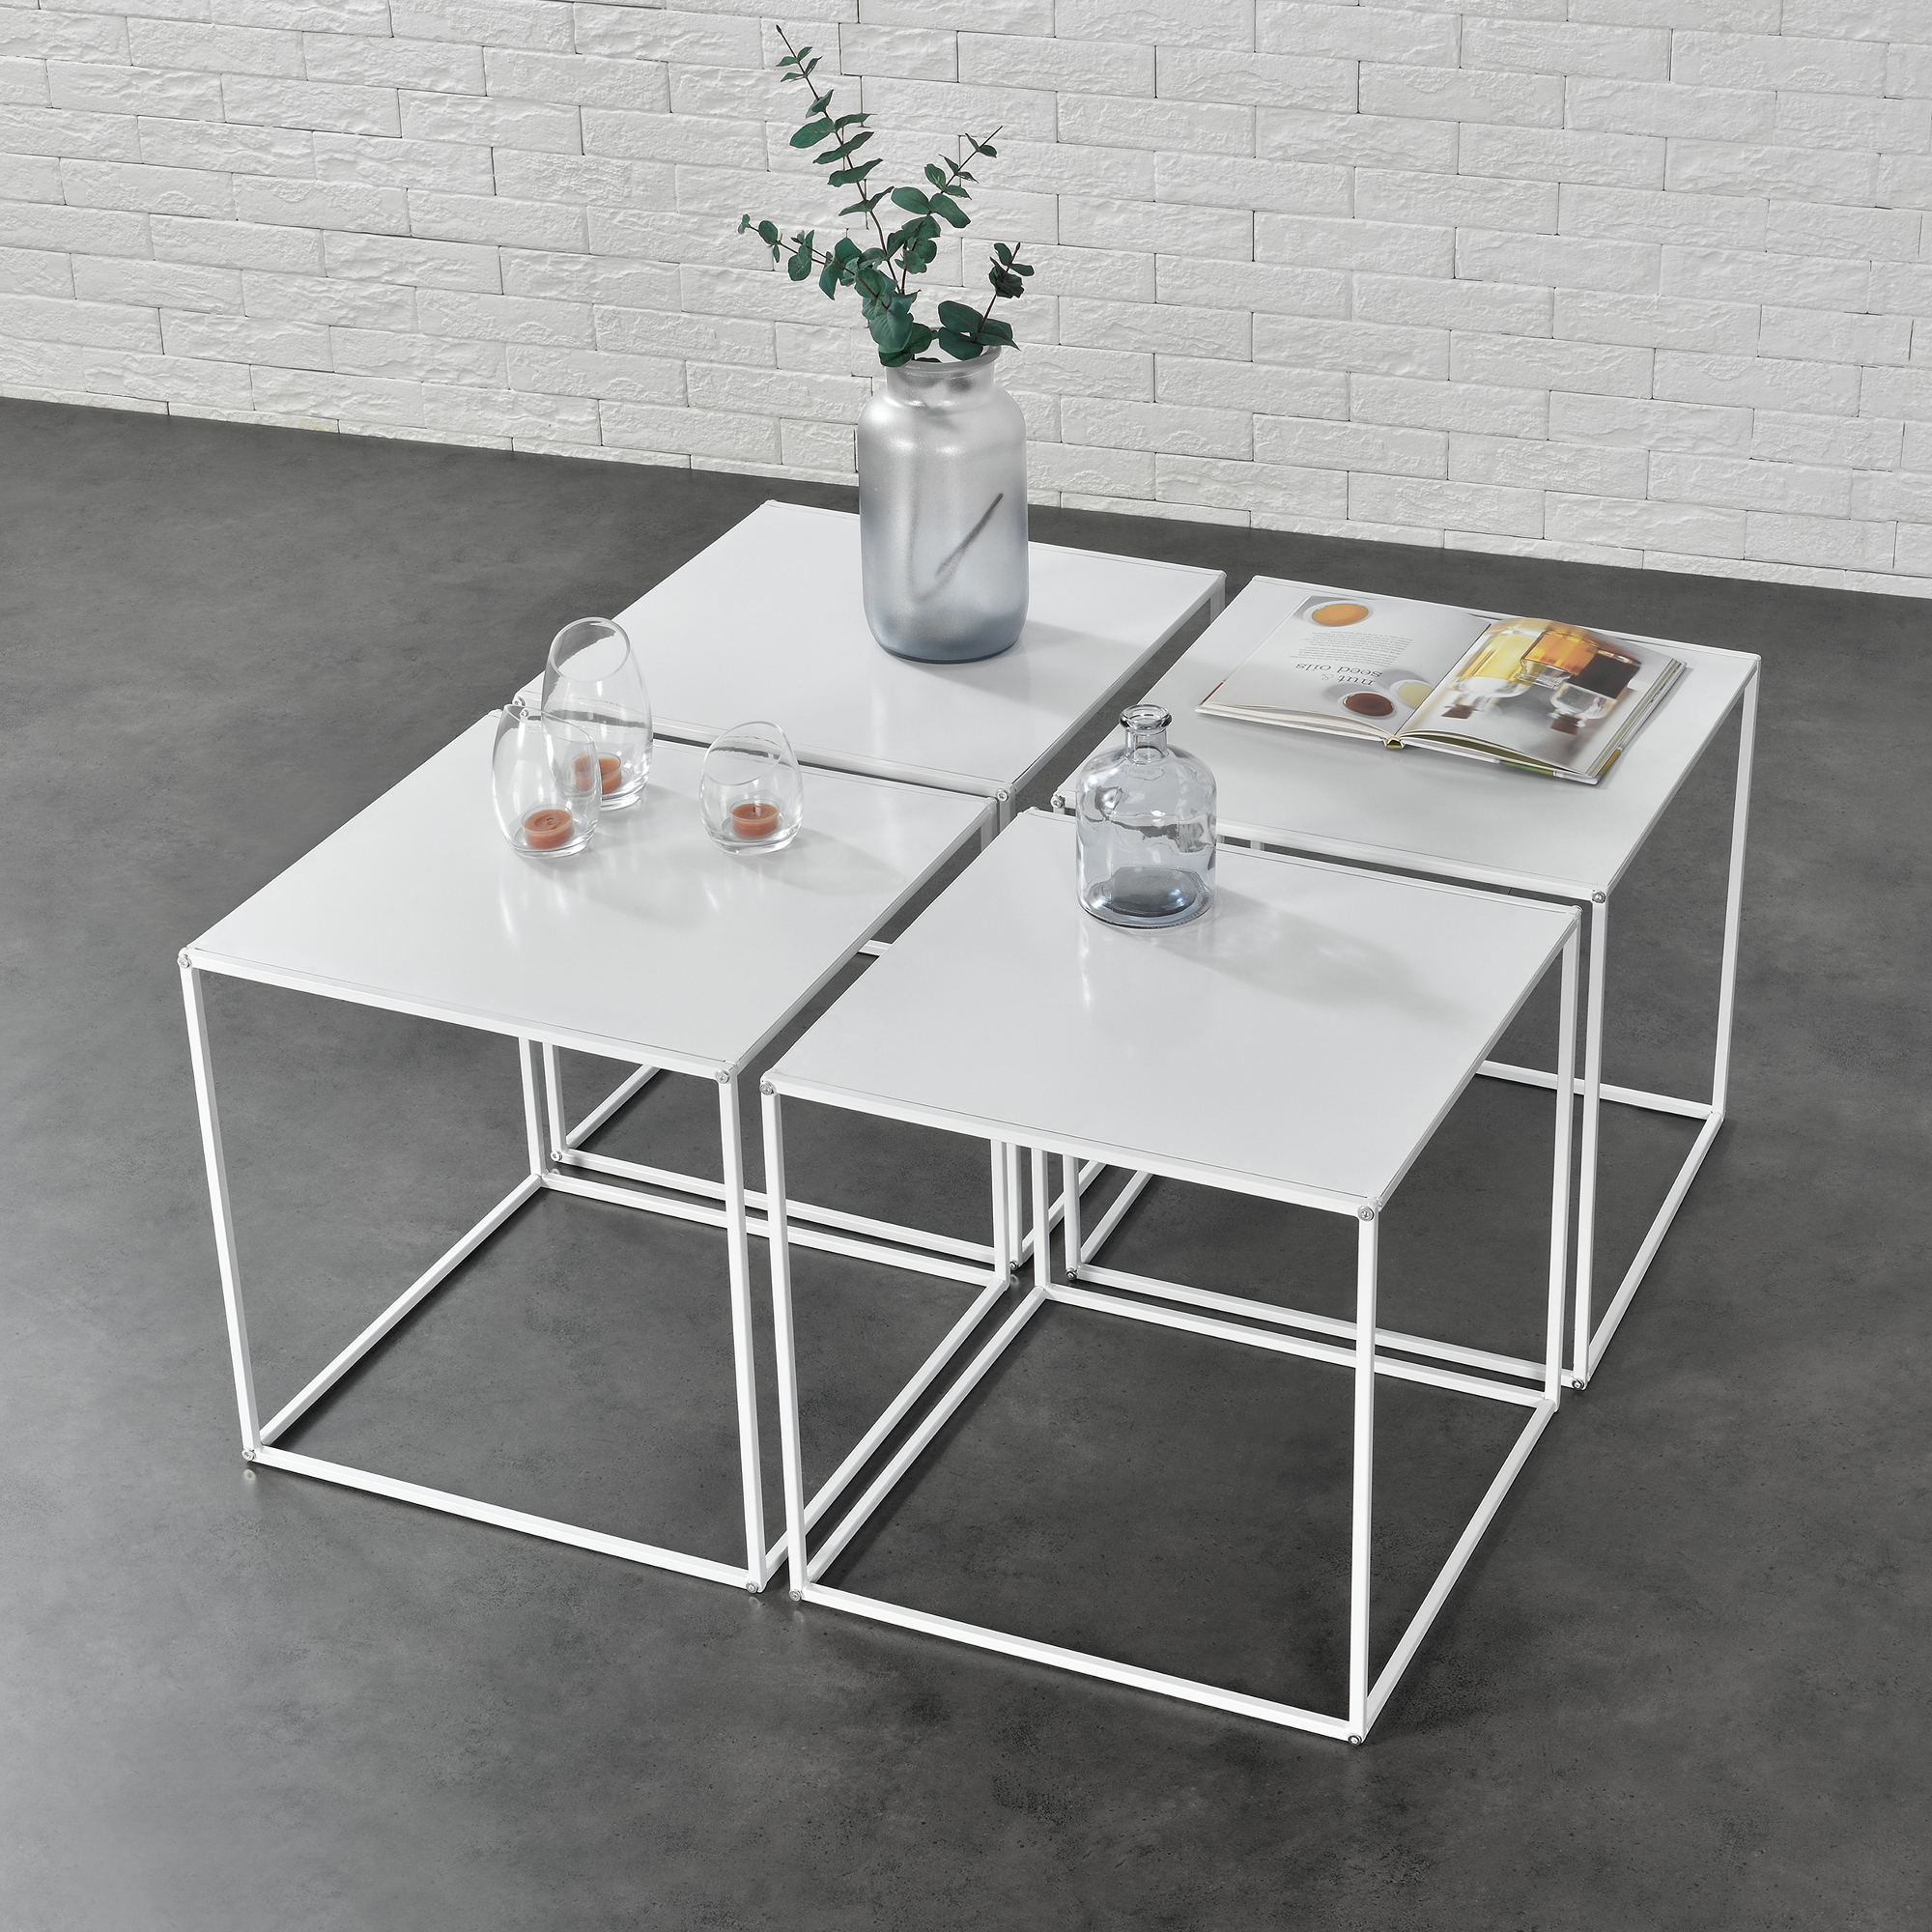 4x Table Basse Table Dappoint Table De Salon Table Table Basse Set